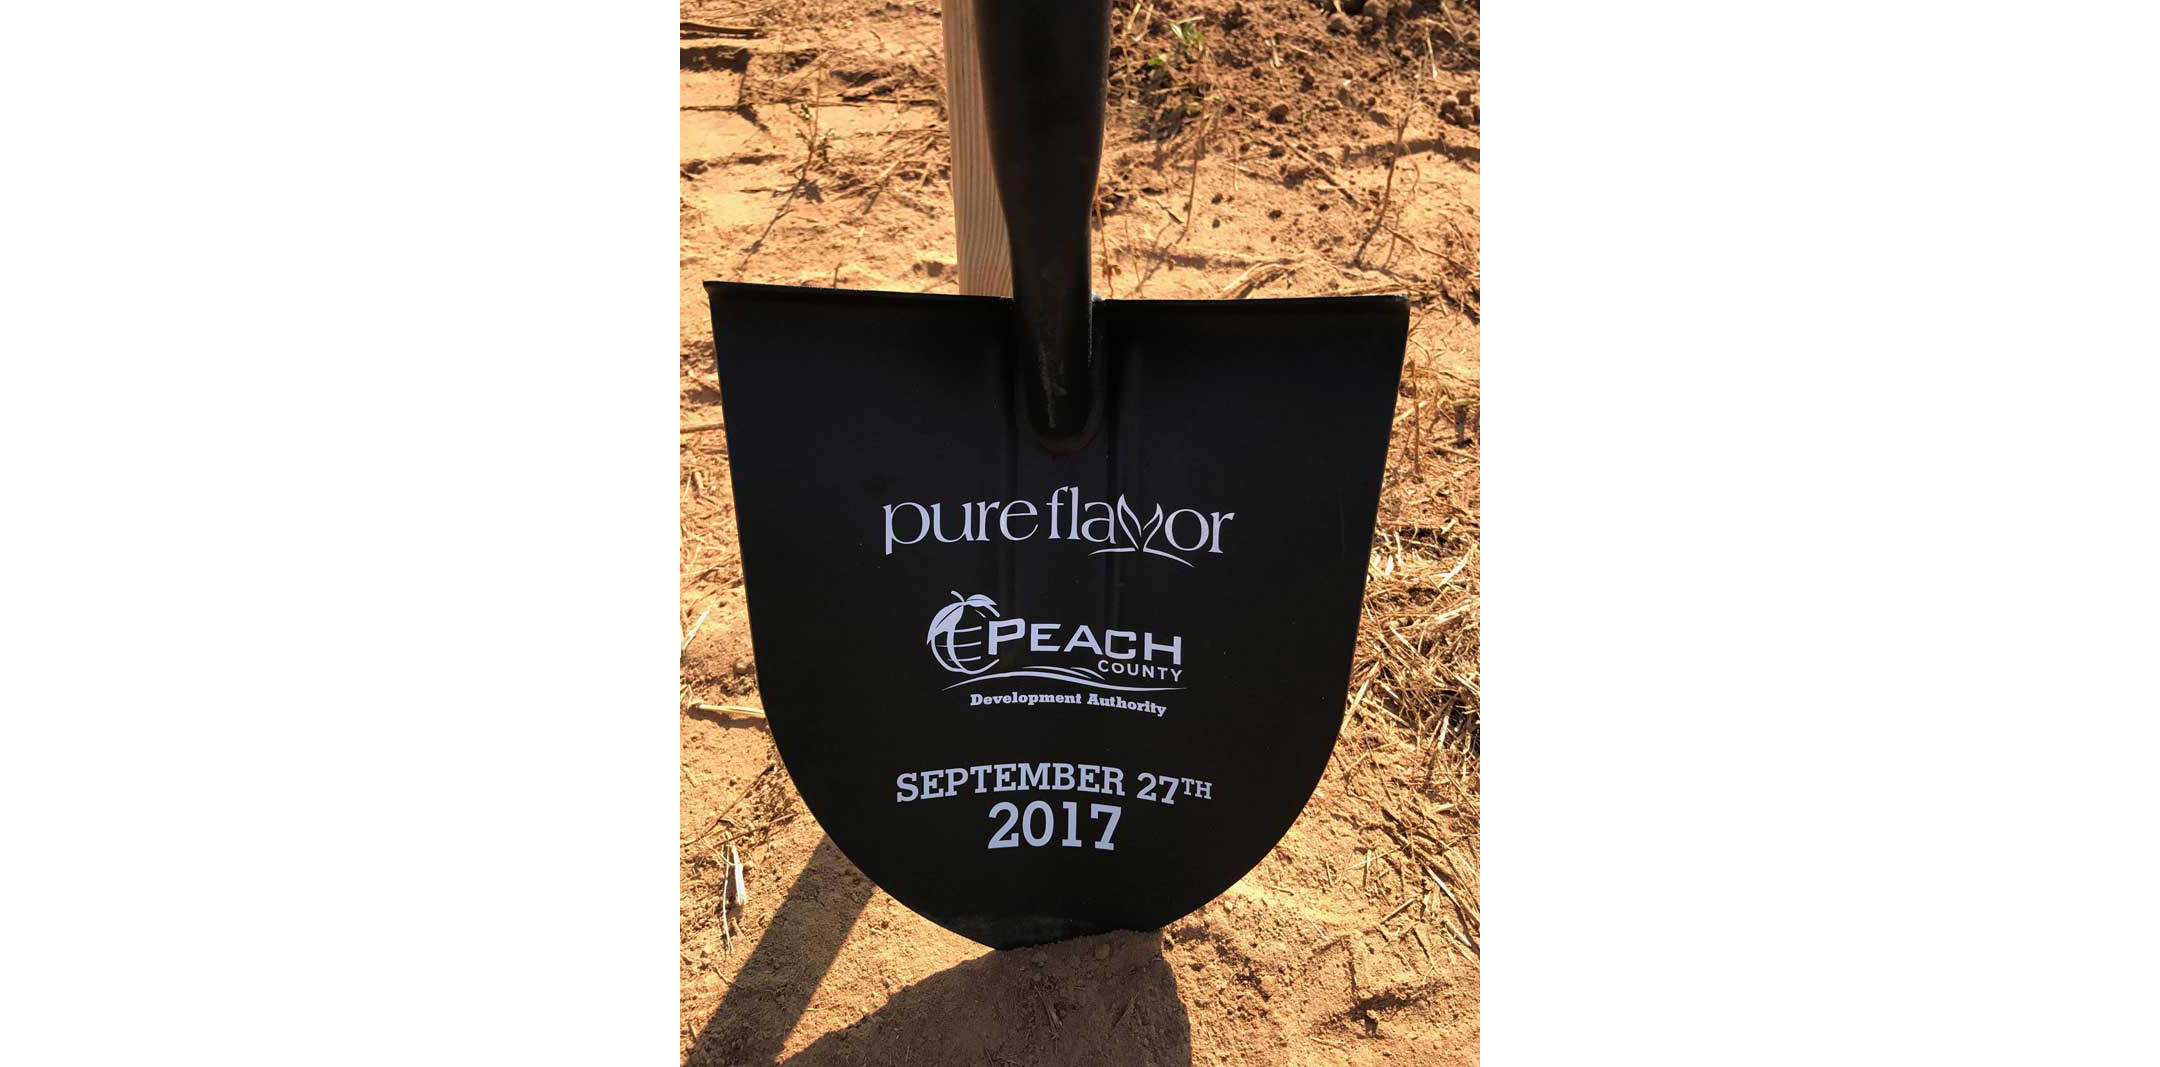 Pure Flavor Georgia greenhouse groundbreaking shovel